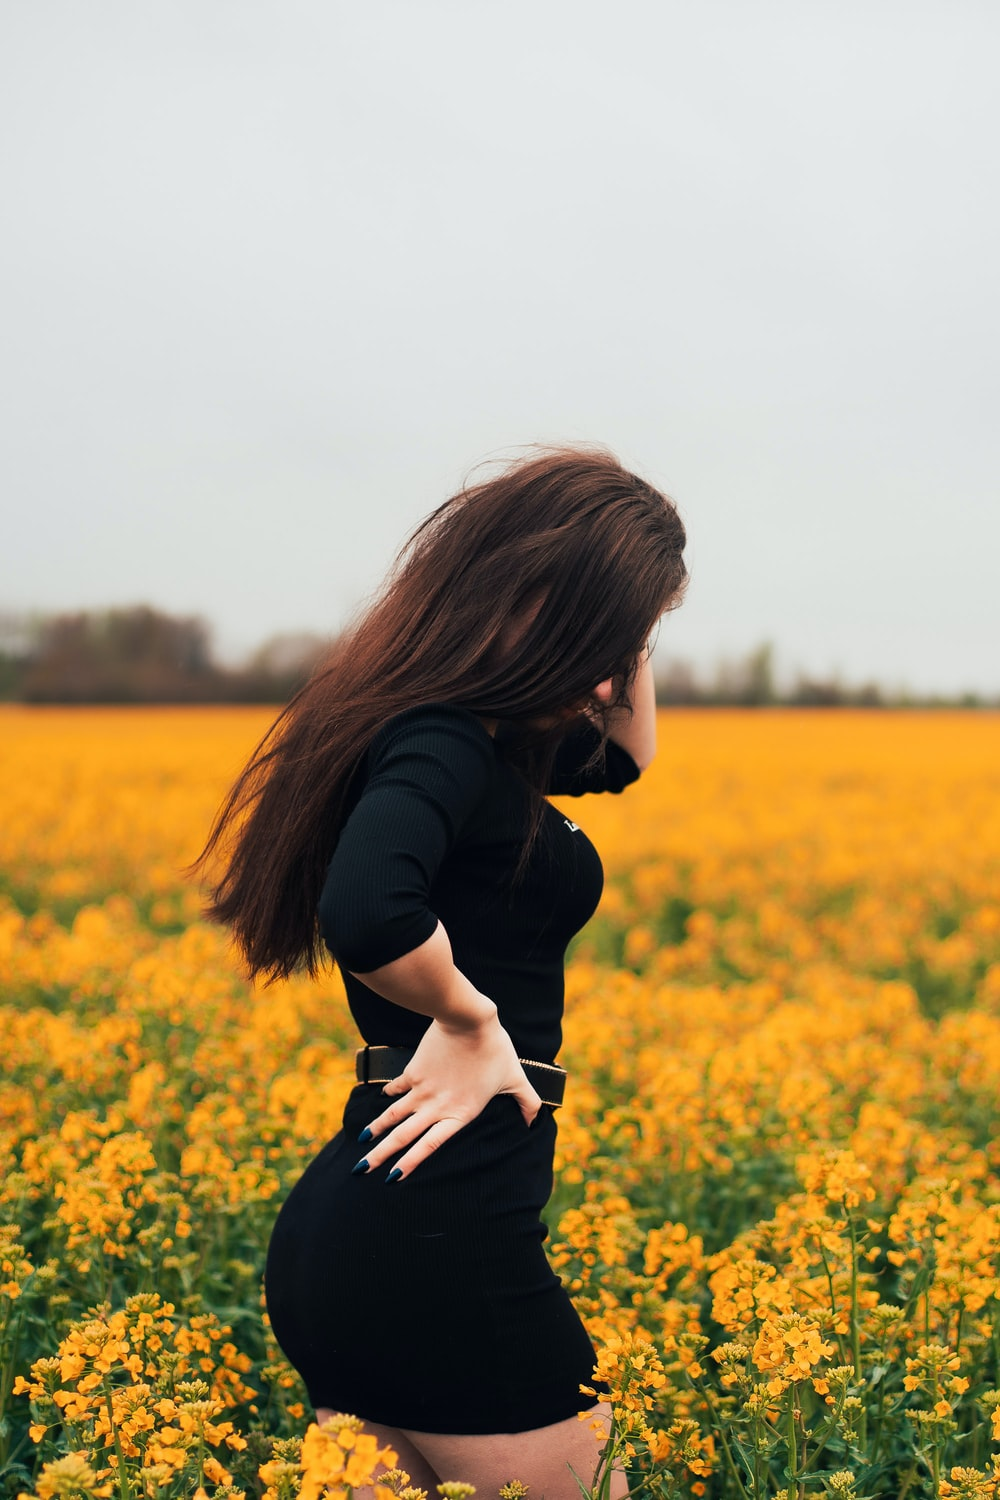 woman in black long sleeve shirt standing on yellow flower field during daytime